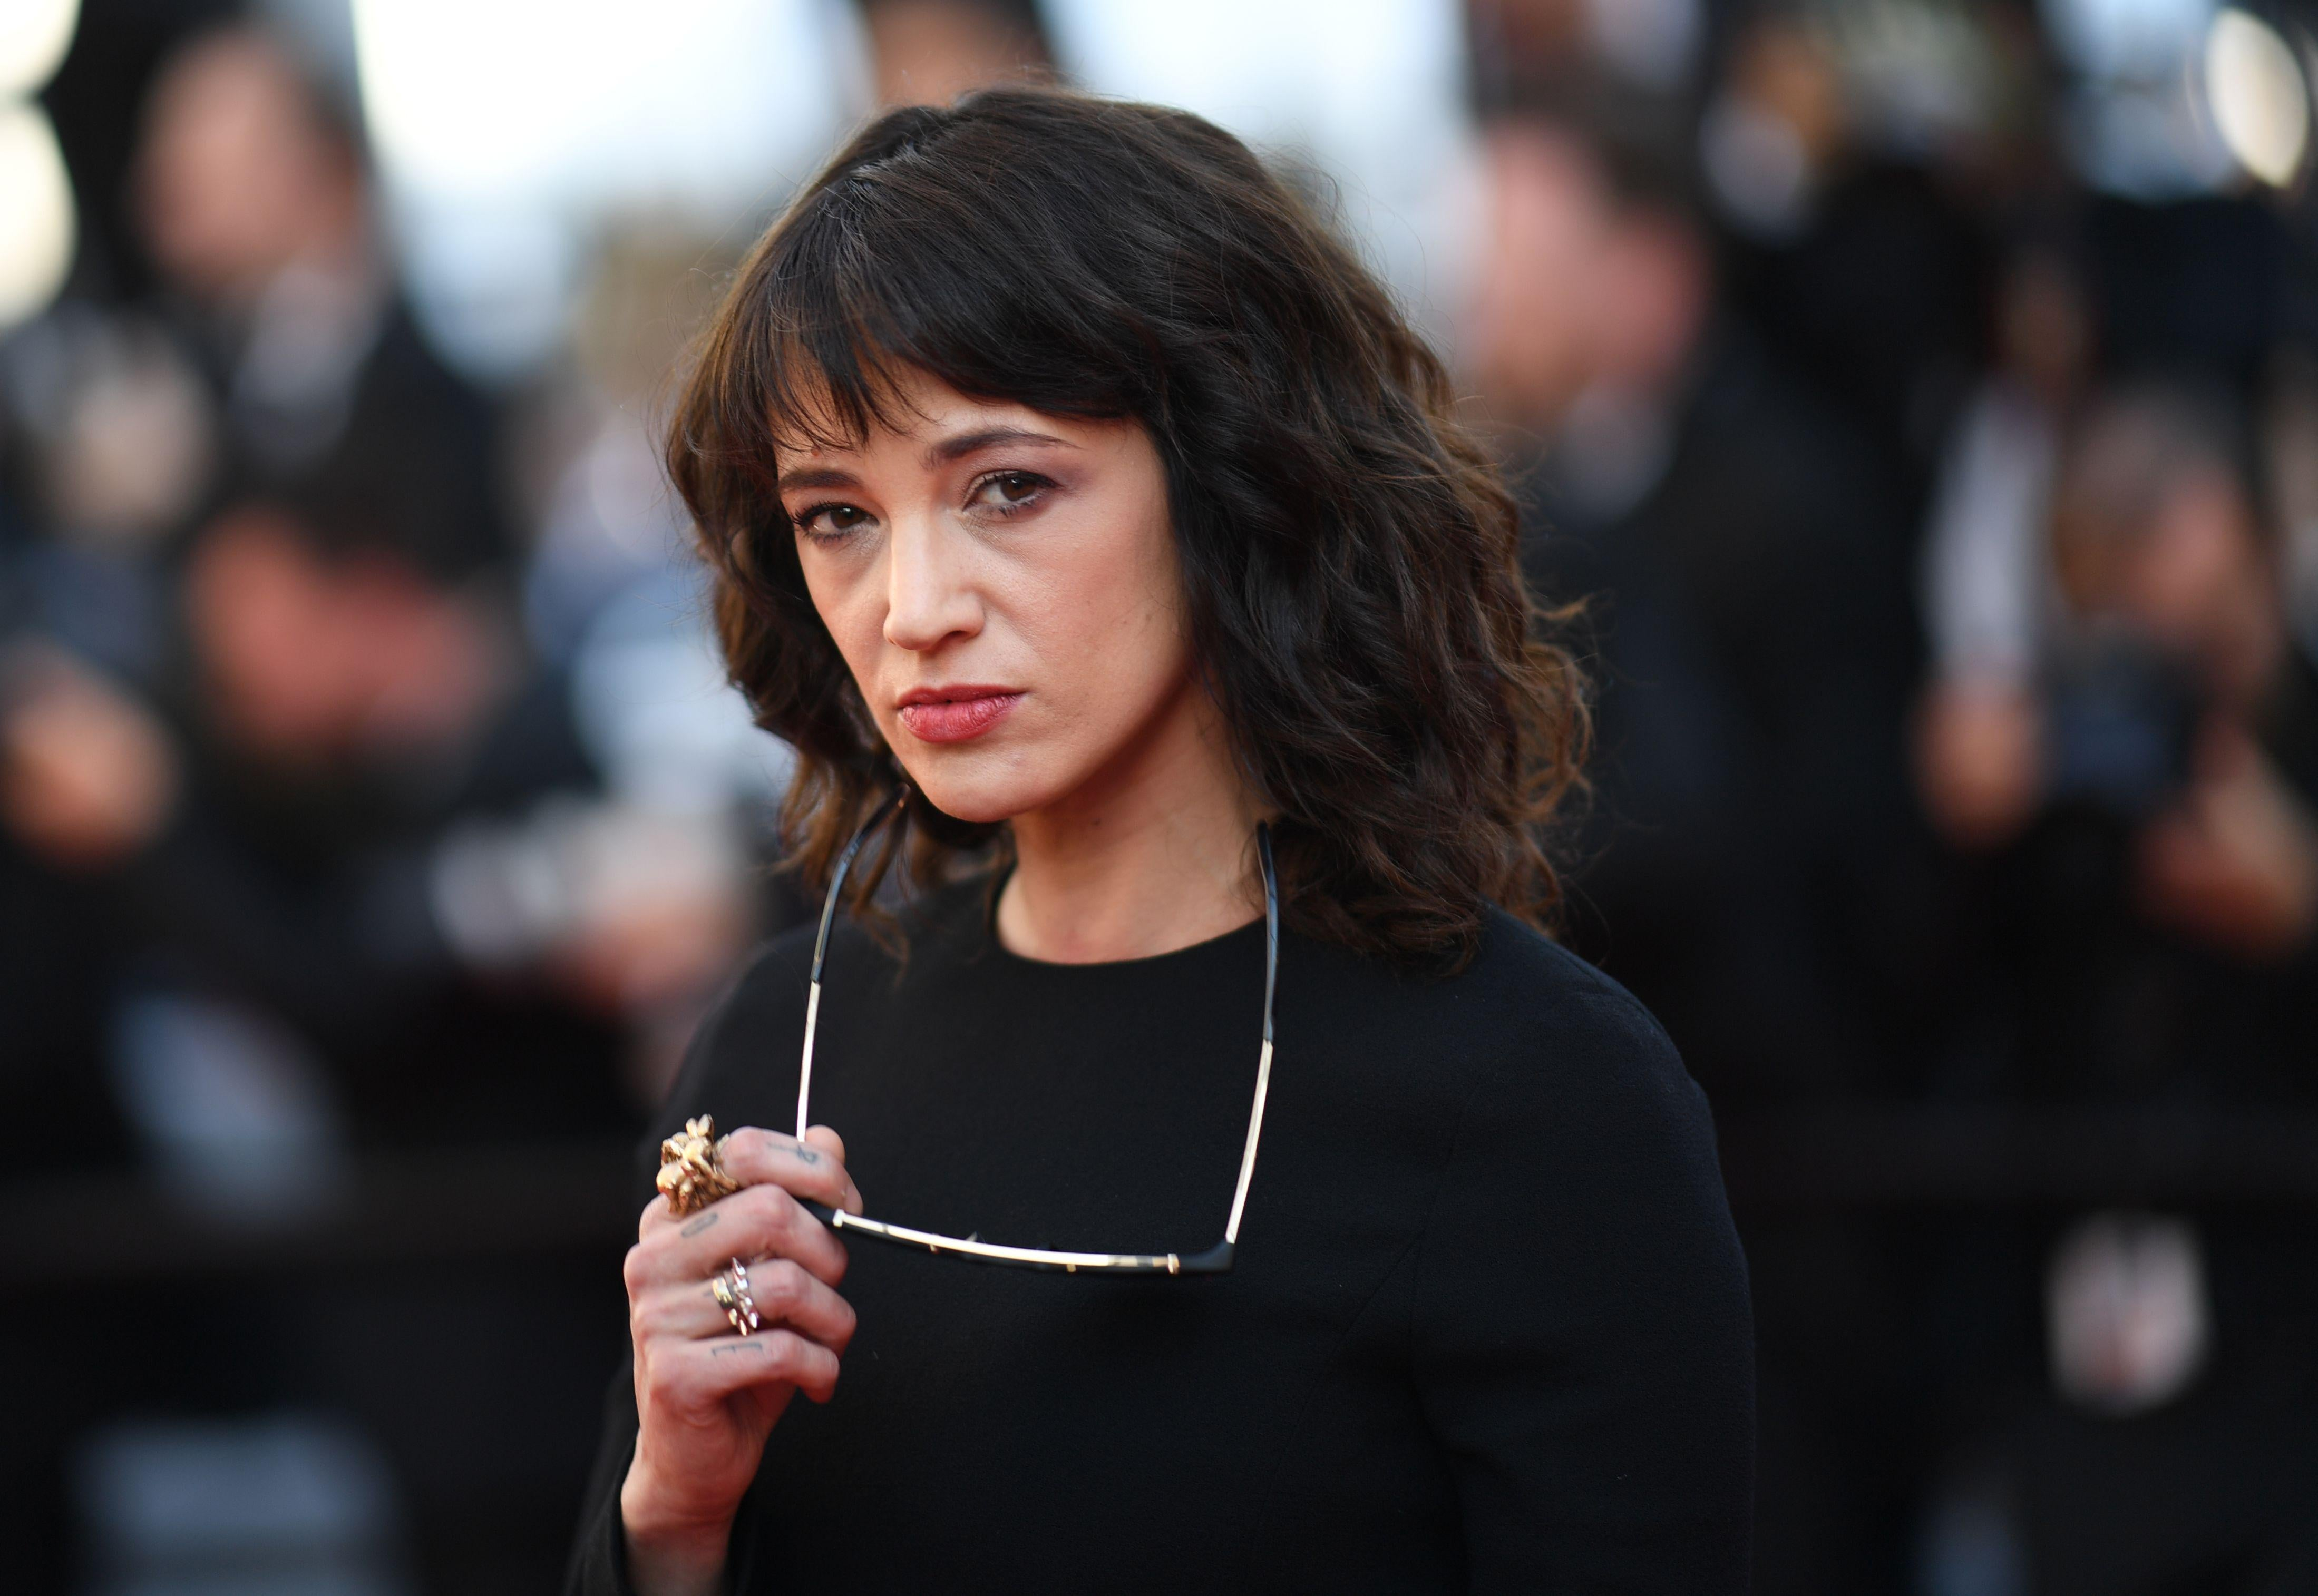 Asia Argento in front of a crowd, holding a pair of sunglasses. She wears black clothing.